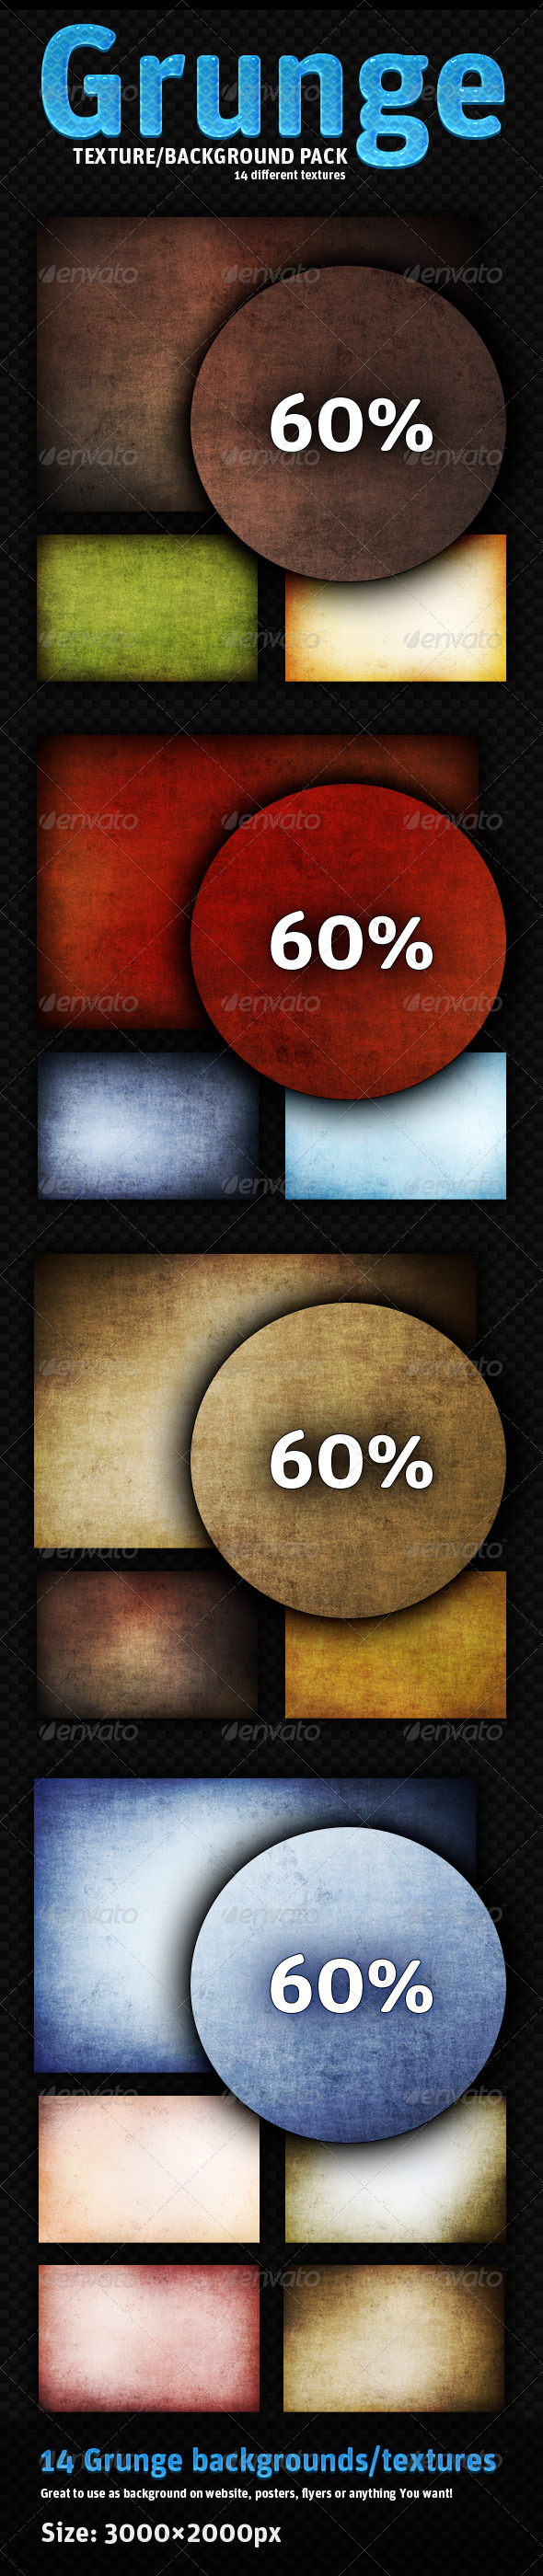 GraphicRiver Grunge pack 14 different backgrounds 148605